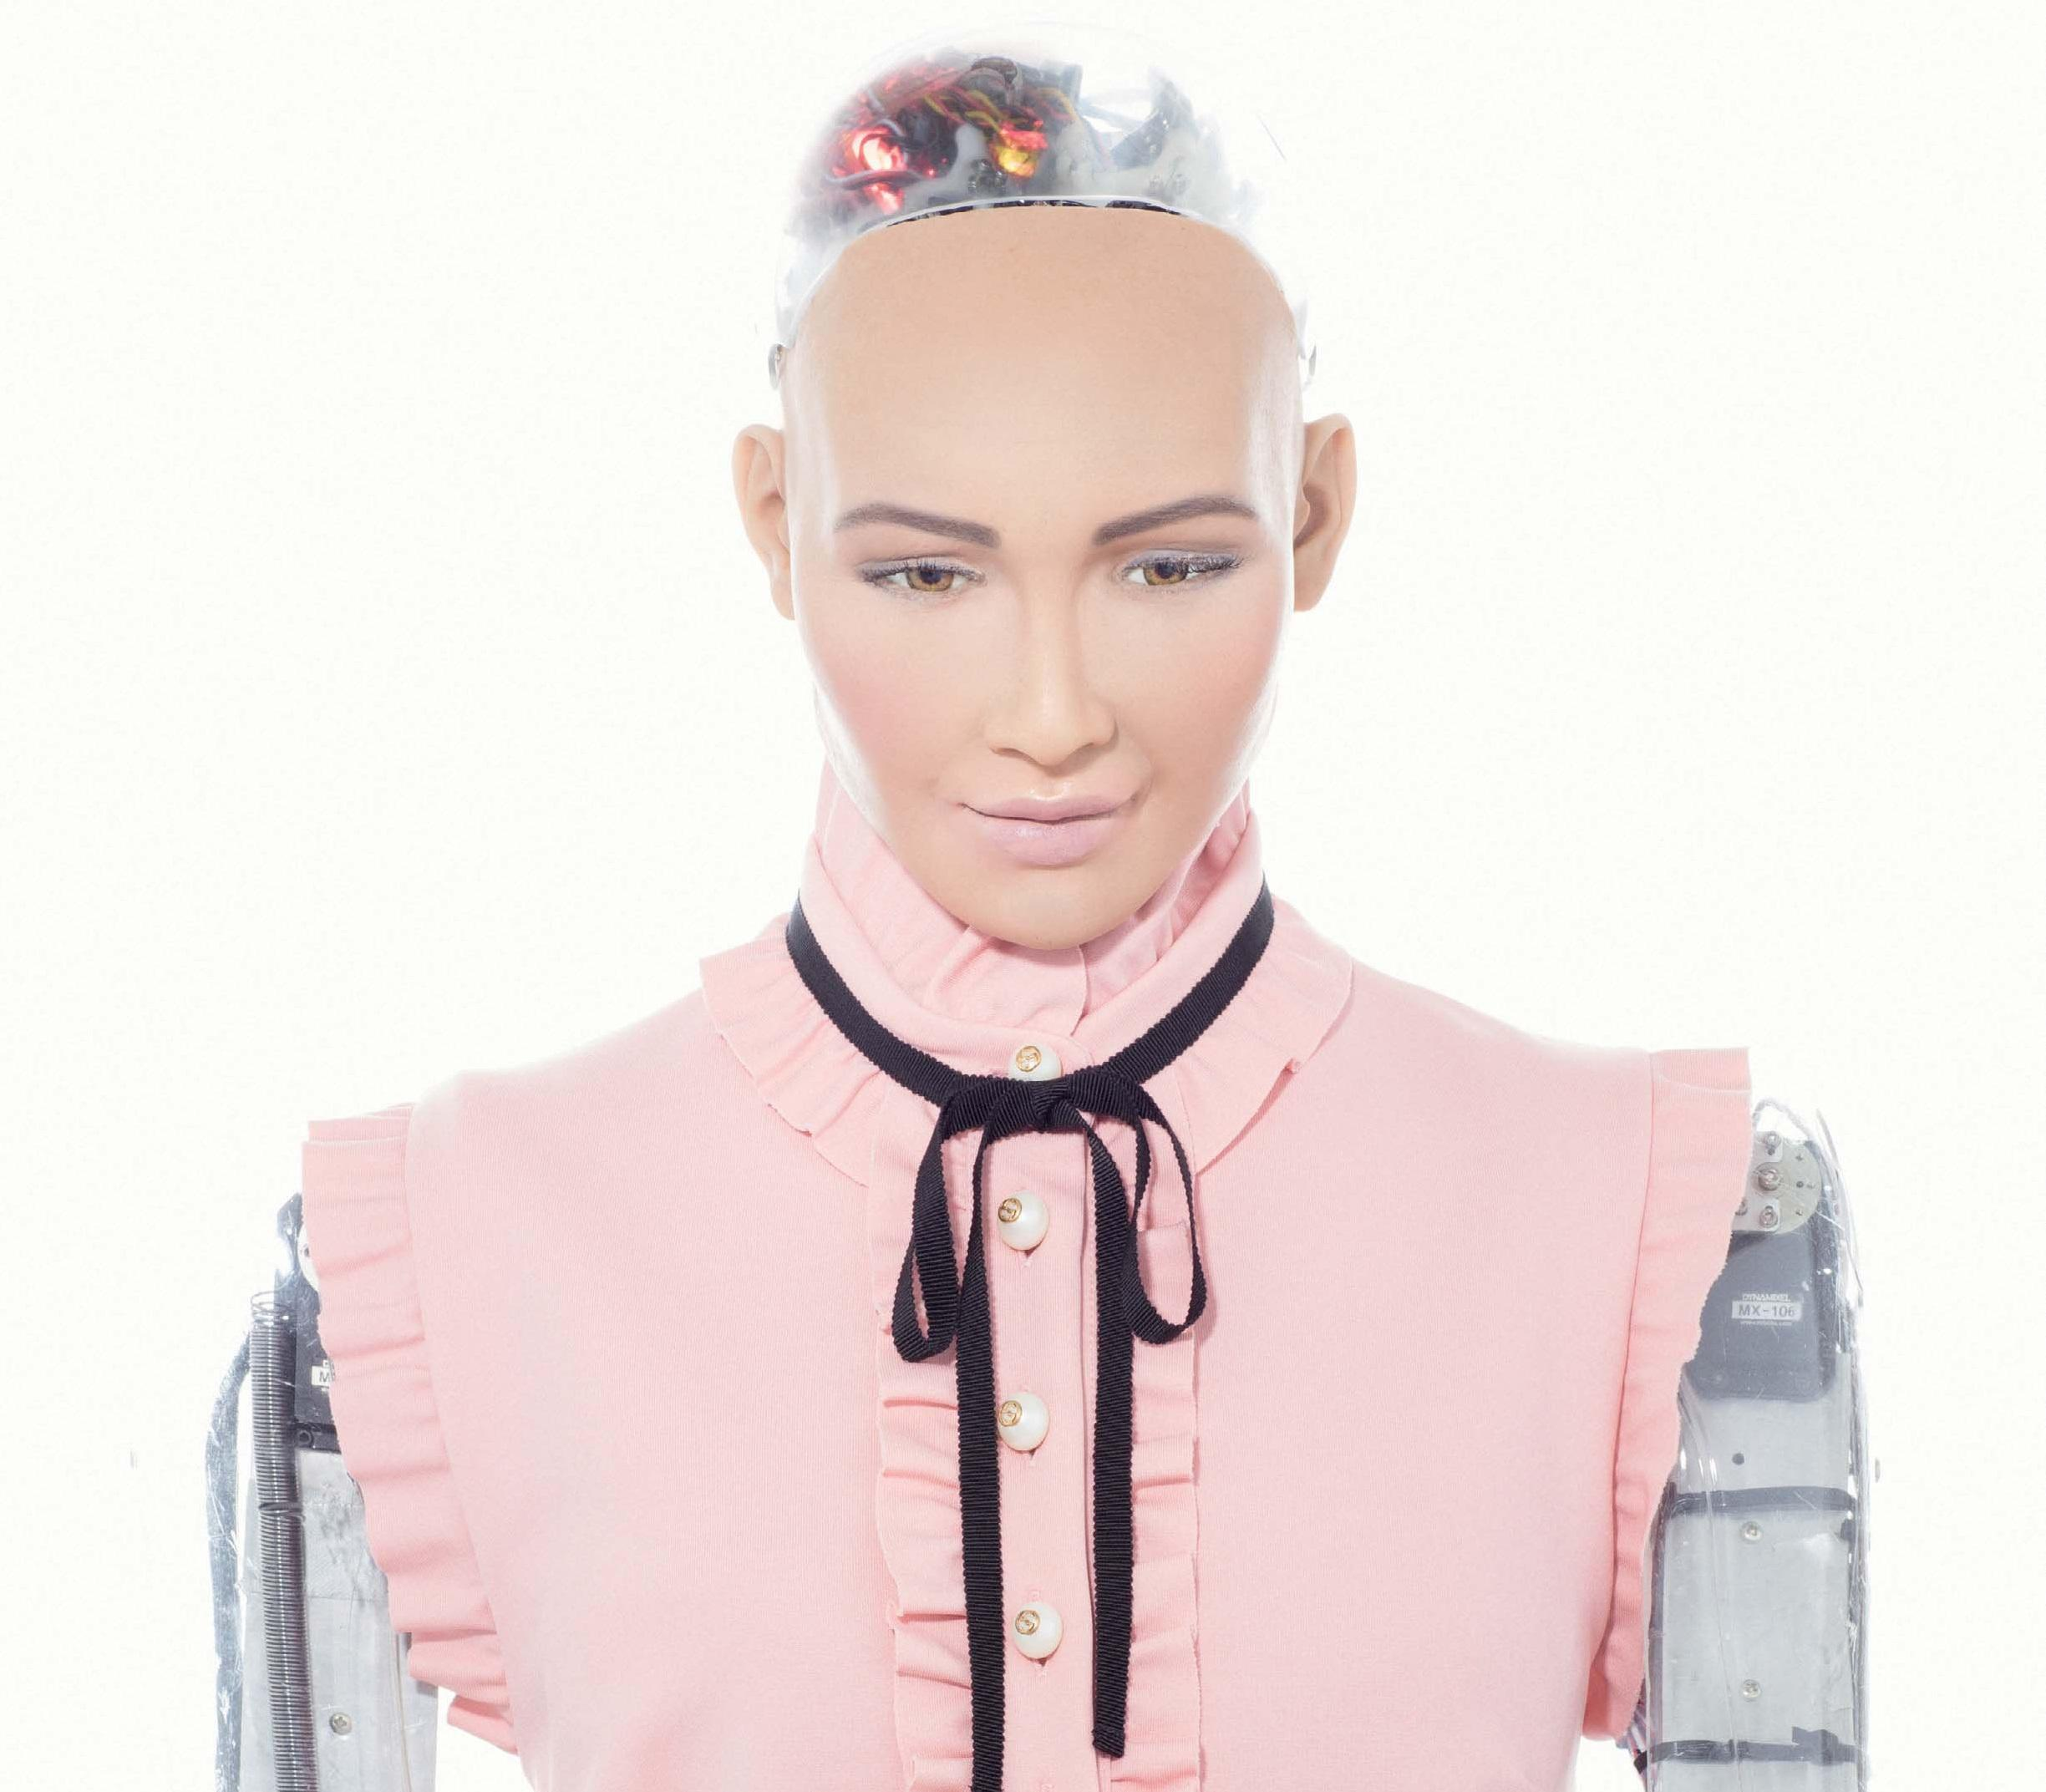 Feeling Lonely! Sophia The Robot For Android Company